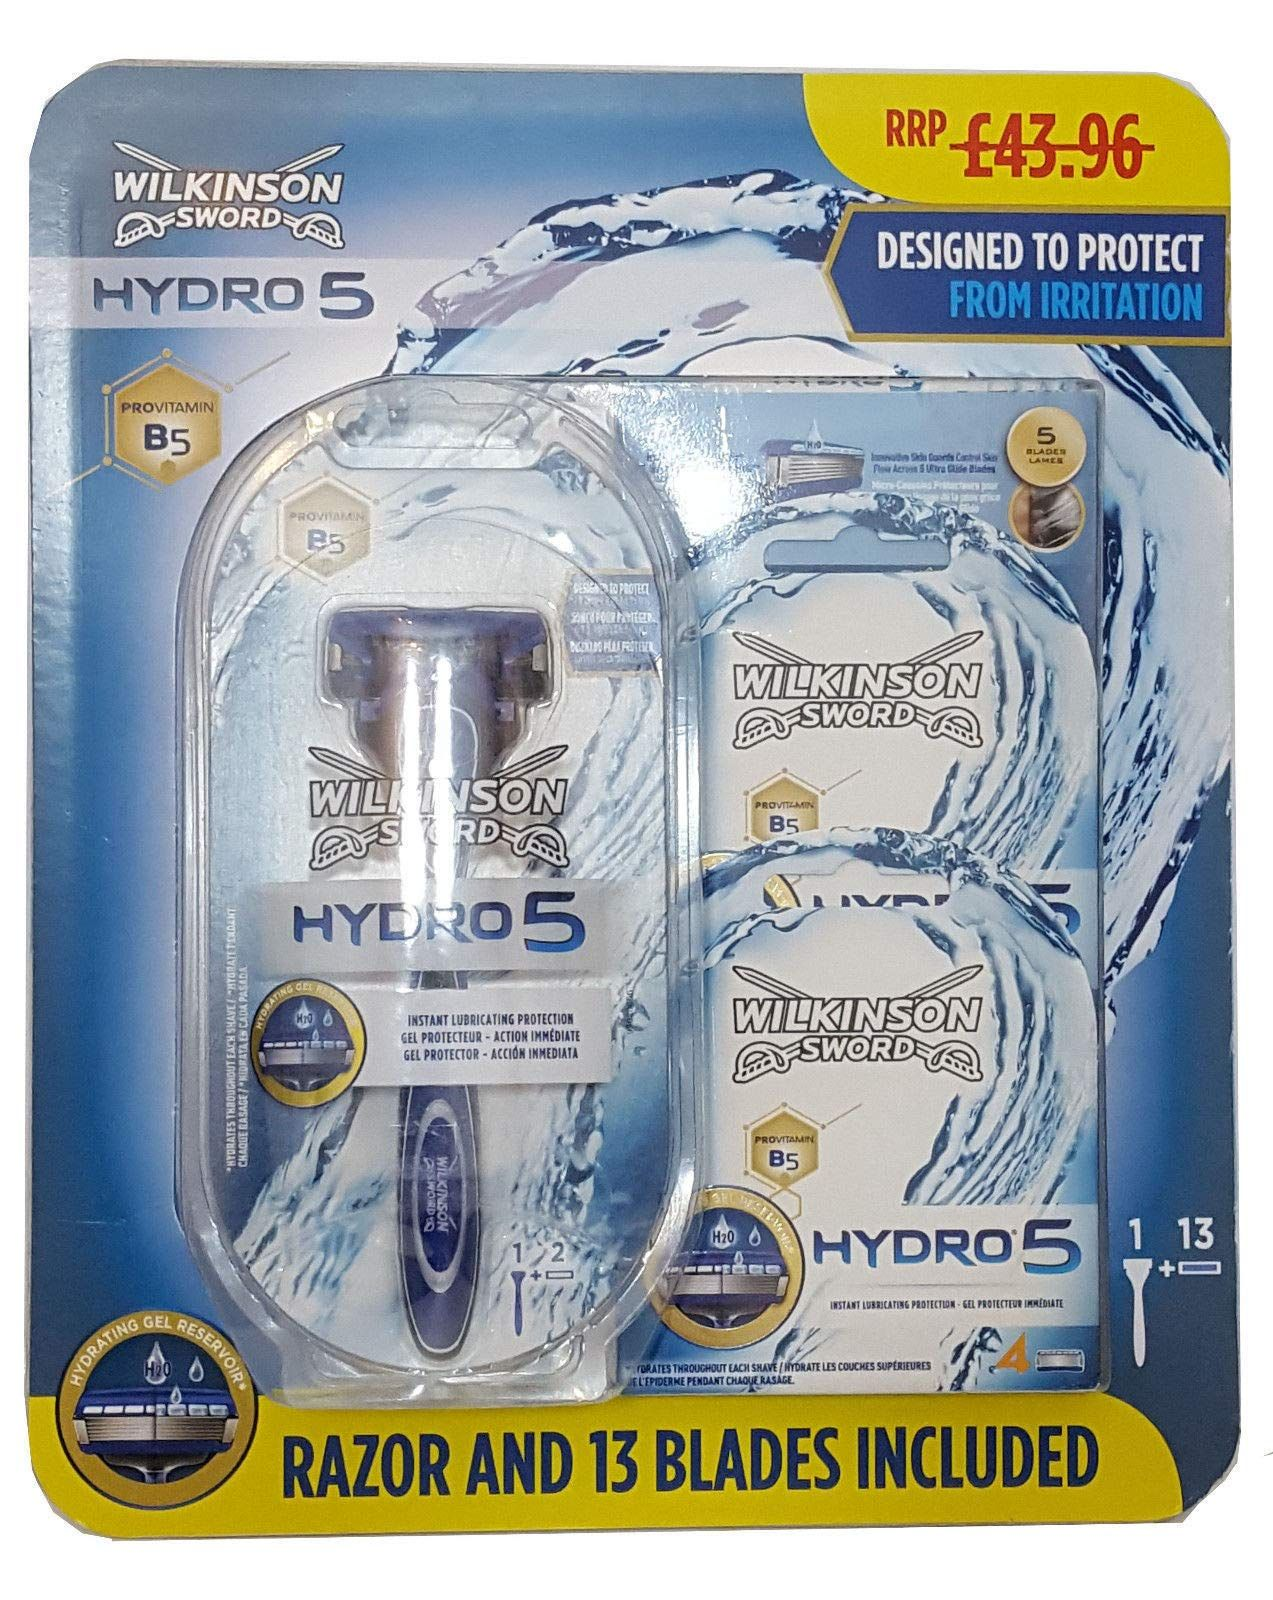 Wilkinson Sword Hydro 5 Shaving Set Includes 14 Blades Items May Be Removed From The Card In 2020 Wilkinson Sword Shaving Set Sword Design